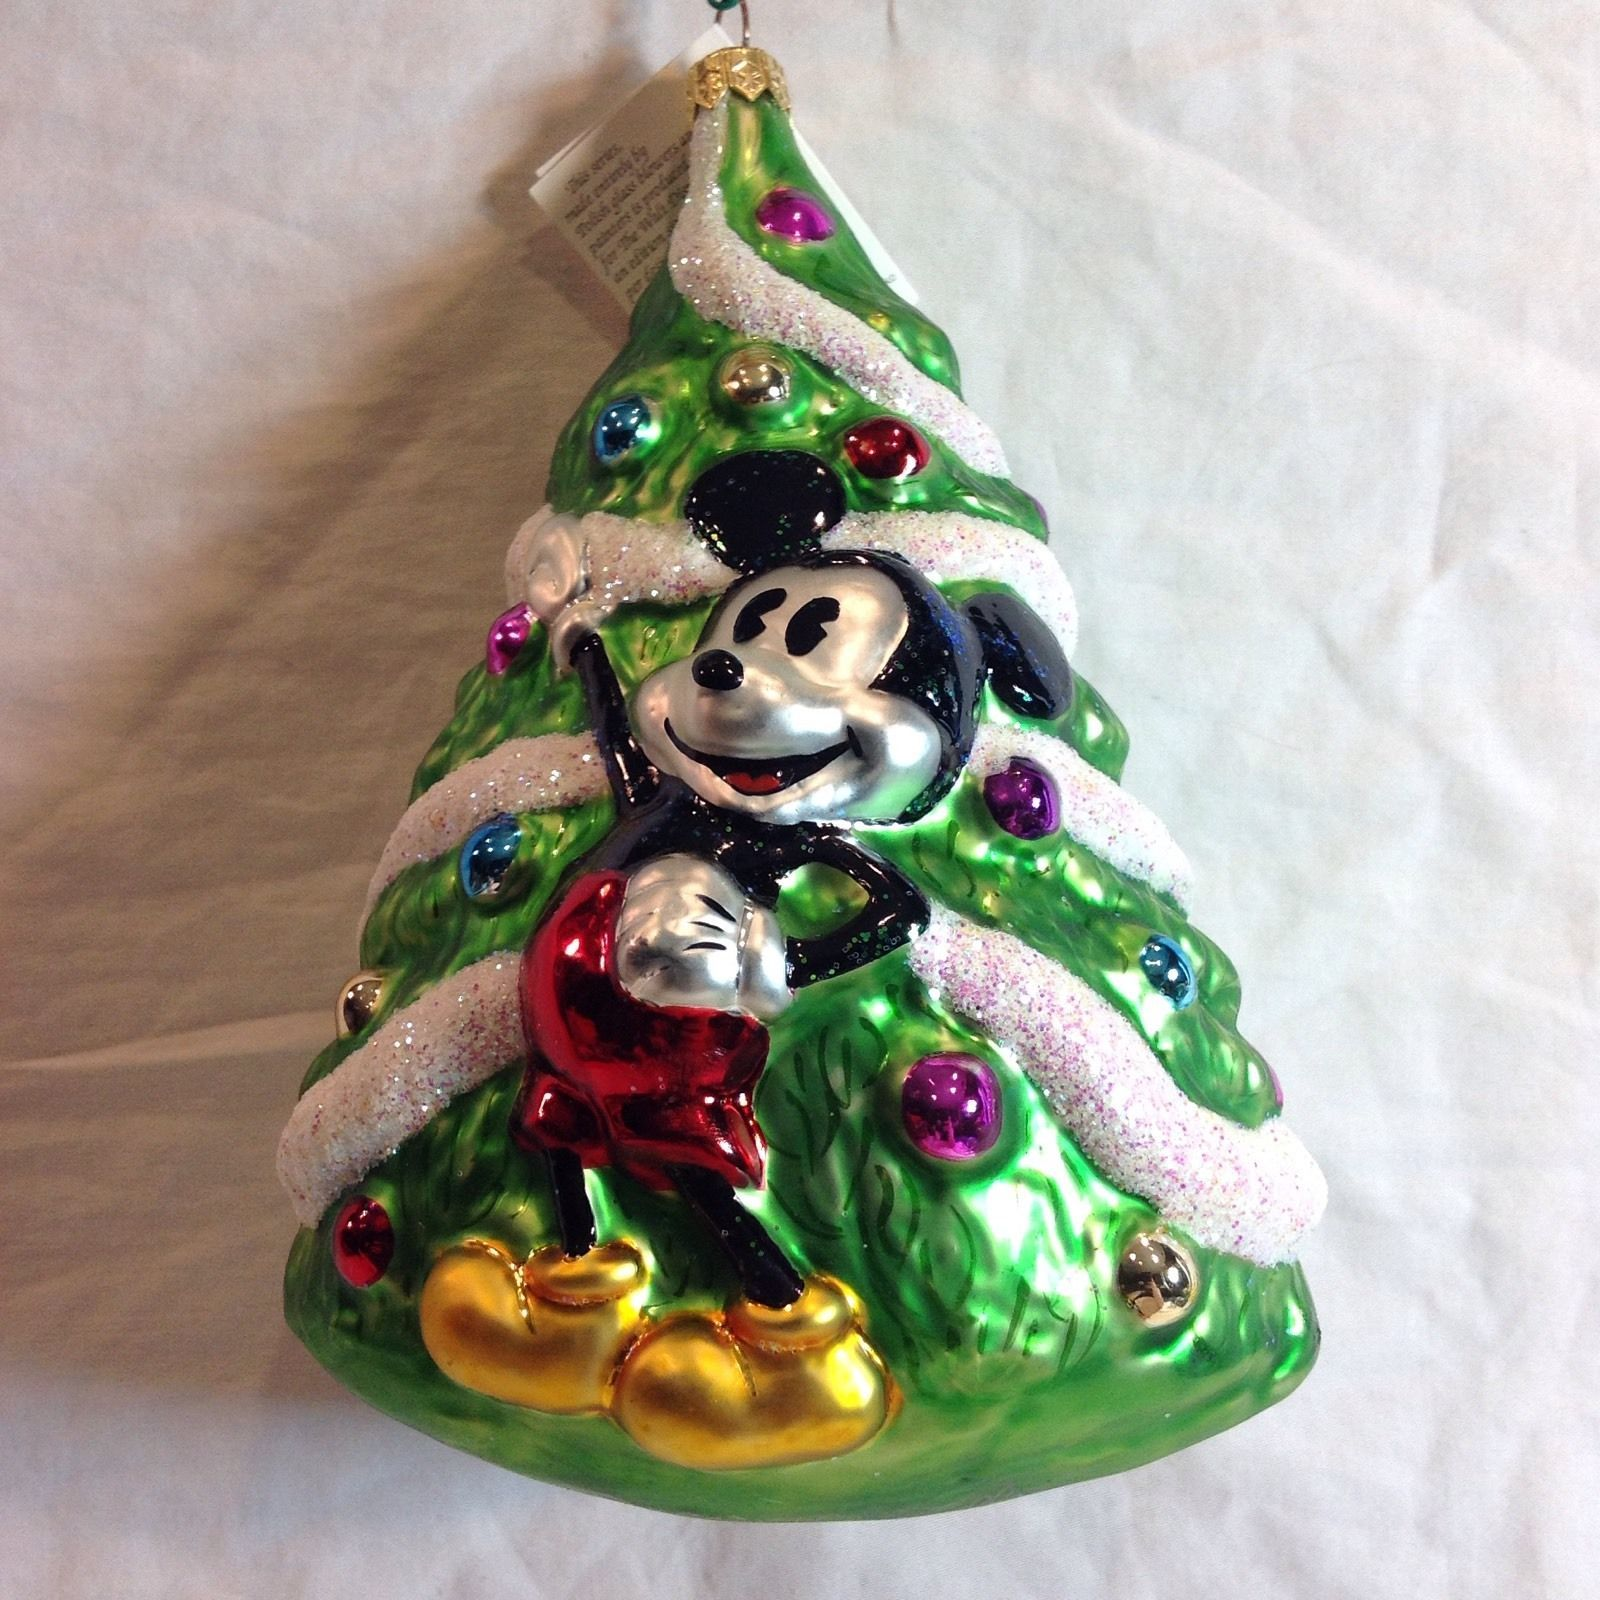 Primary image for Christopher Radko Ornament Disney Mickey Mouse Variant Christmas Tree Pluto 1995